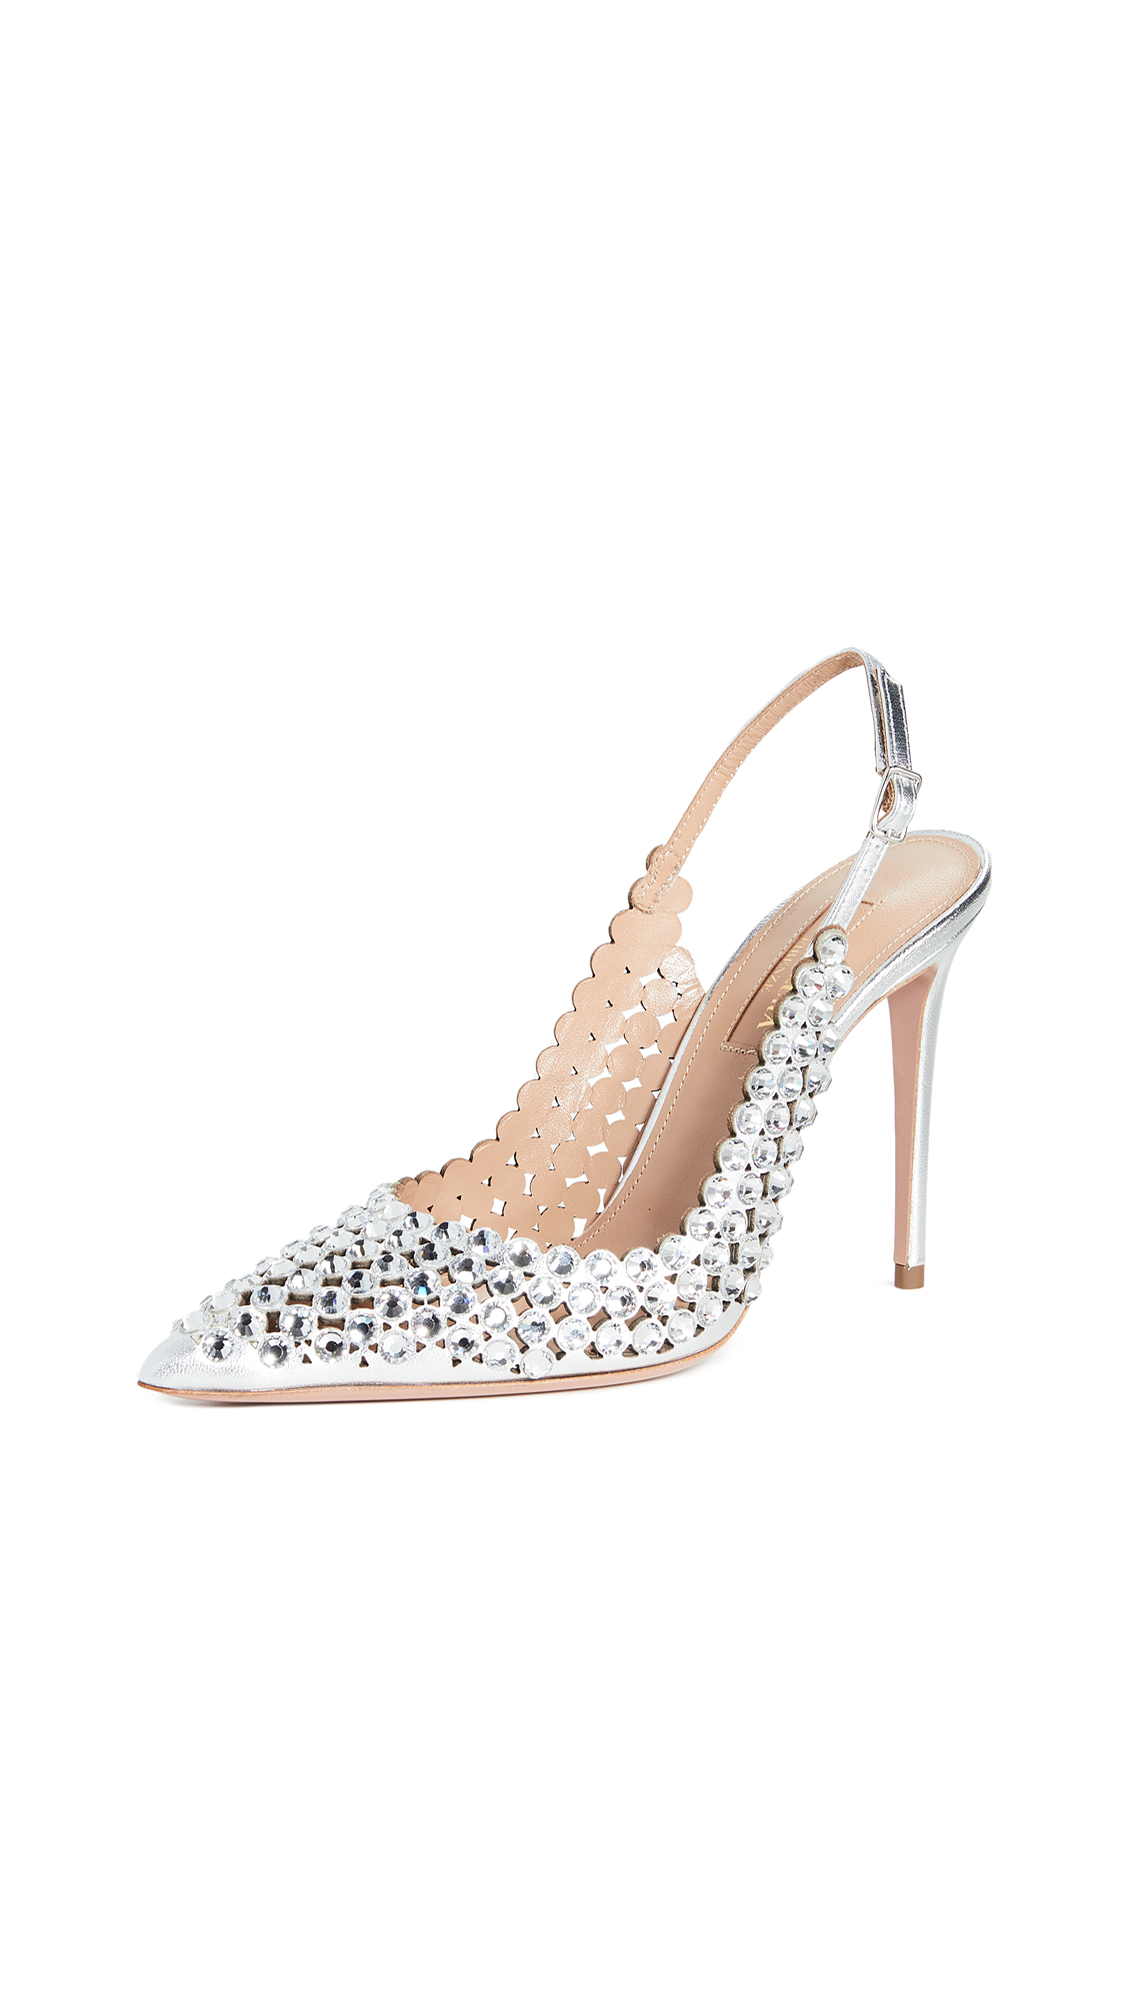 Buy Aquazzura 105mm Tequila Pumps online, shop Aquazzura